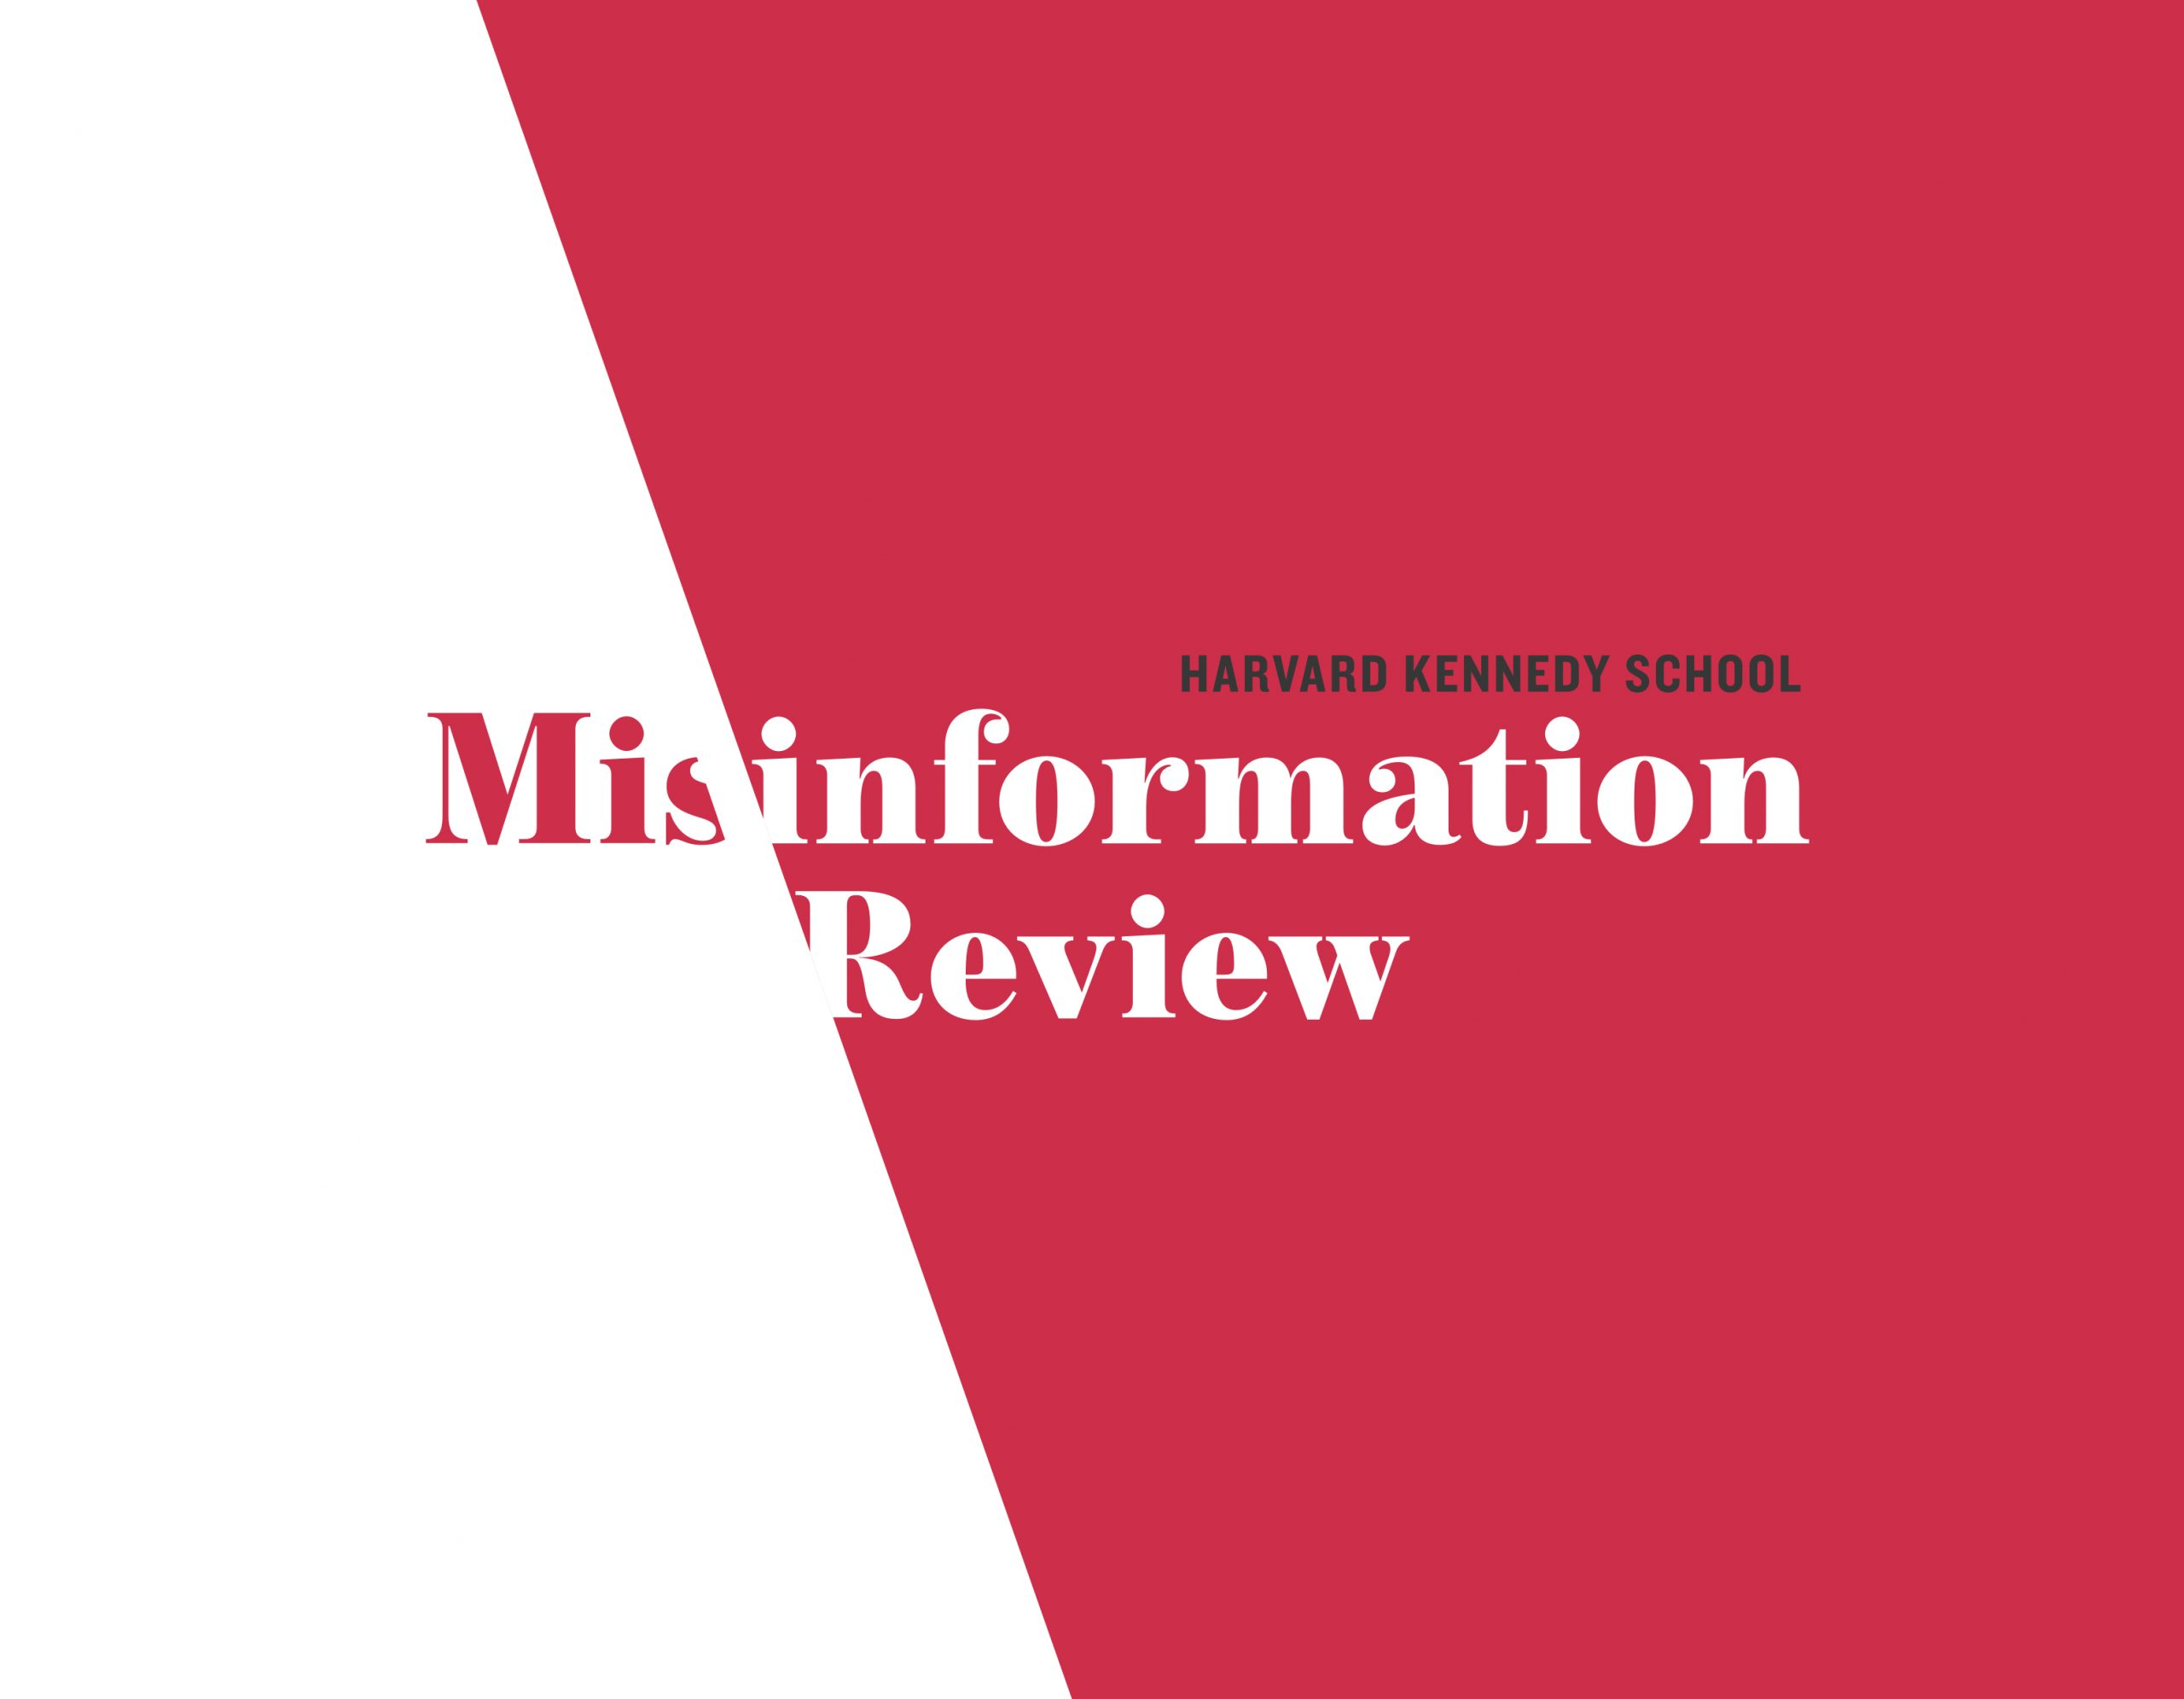 HKS Misinformation Review logo